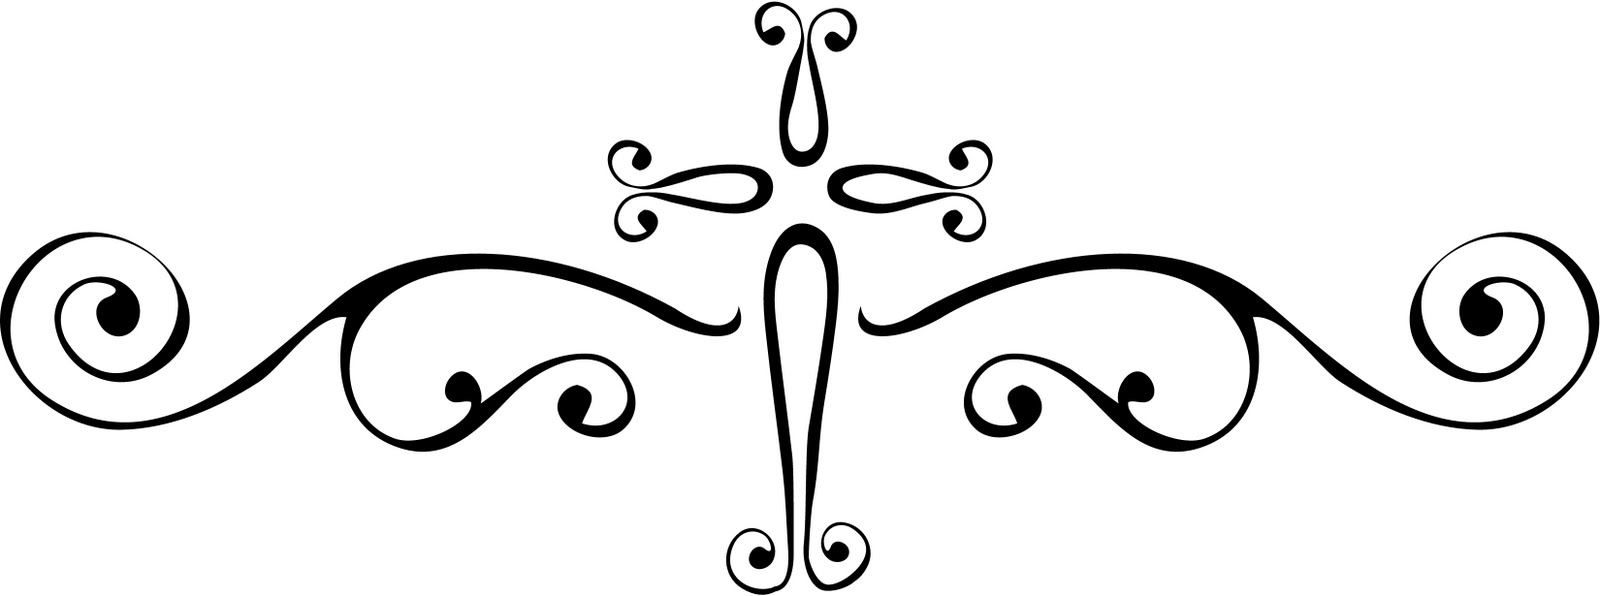 Filigree Cross Clip Art